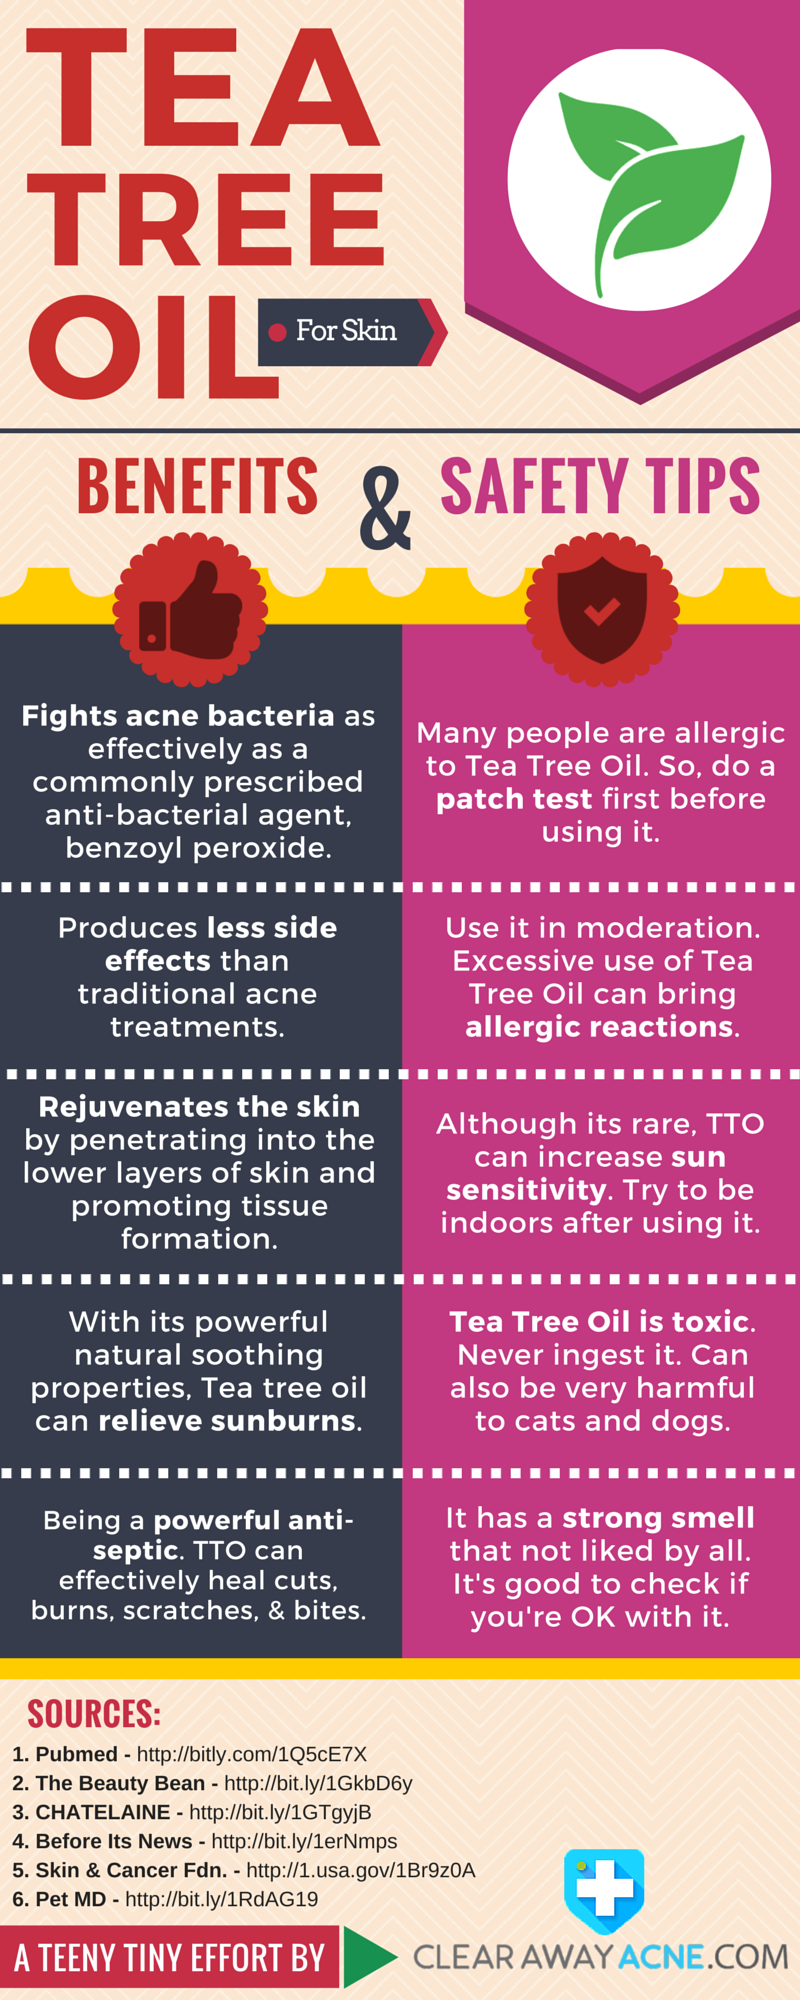 10 Tea Tree Oil Usage and Safety Tips For Acne and Skin Care